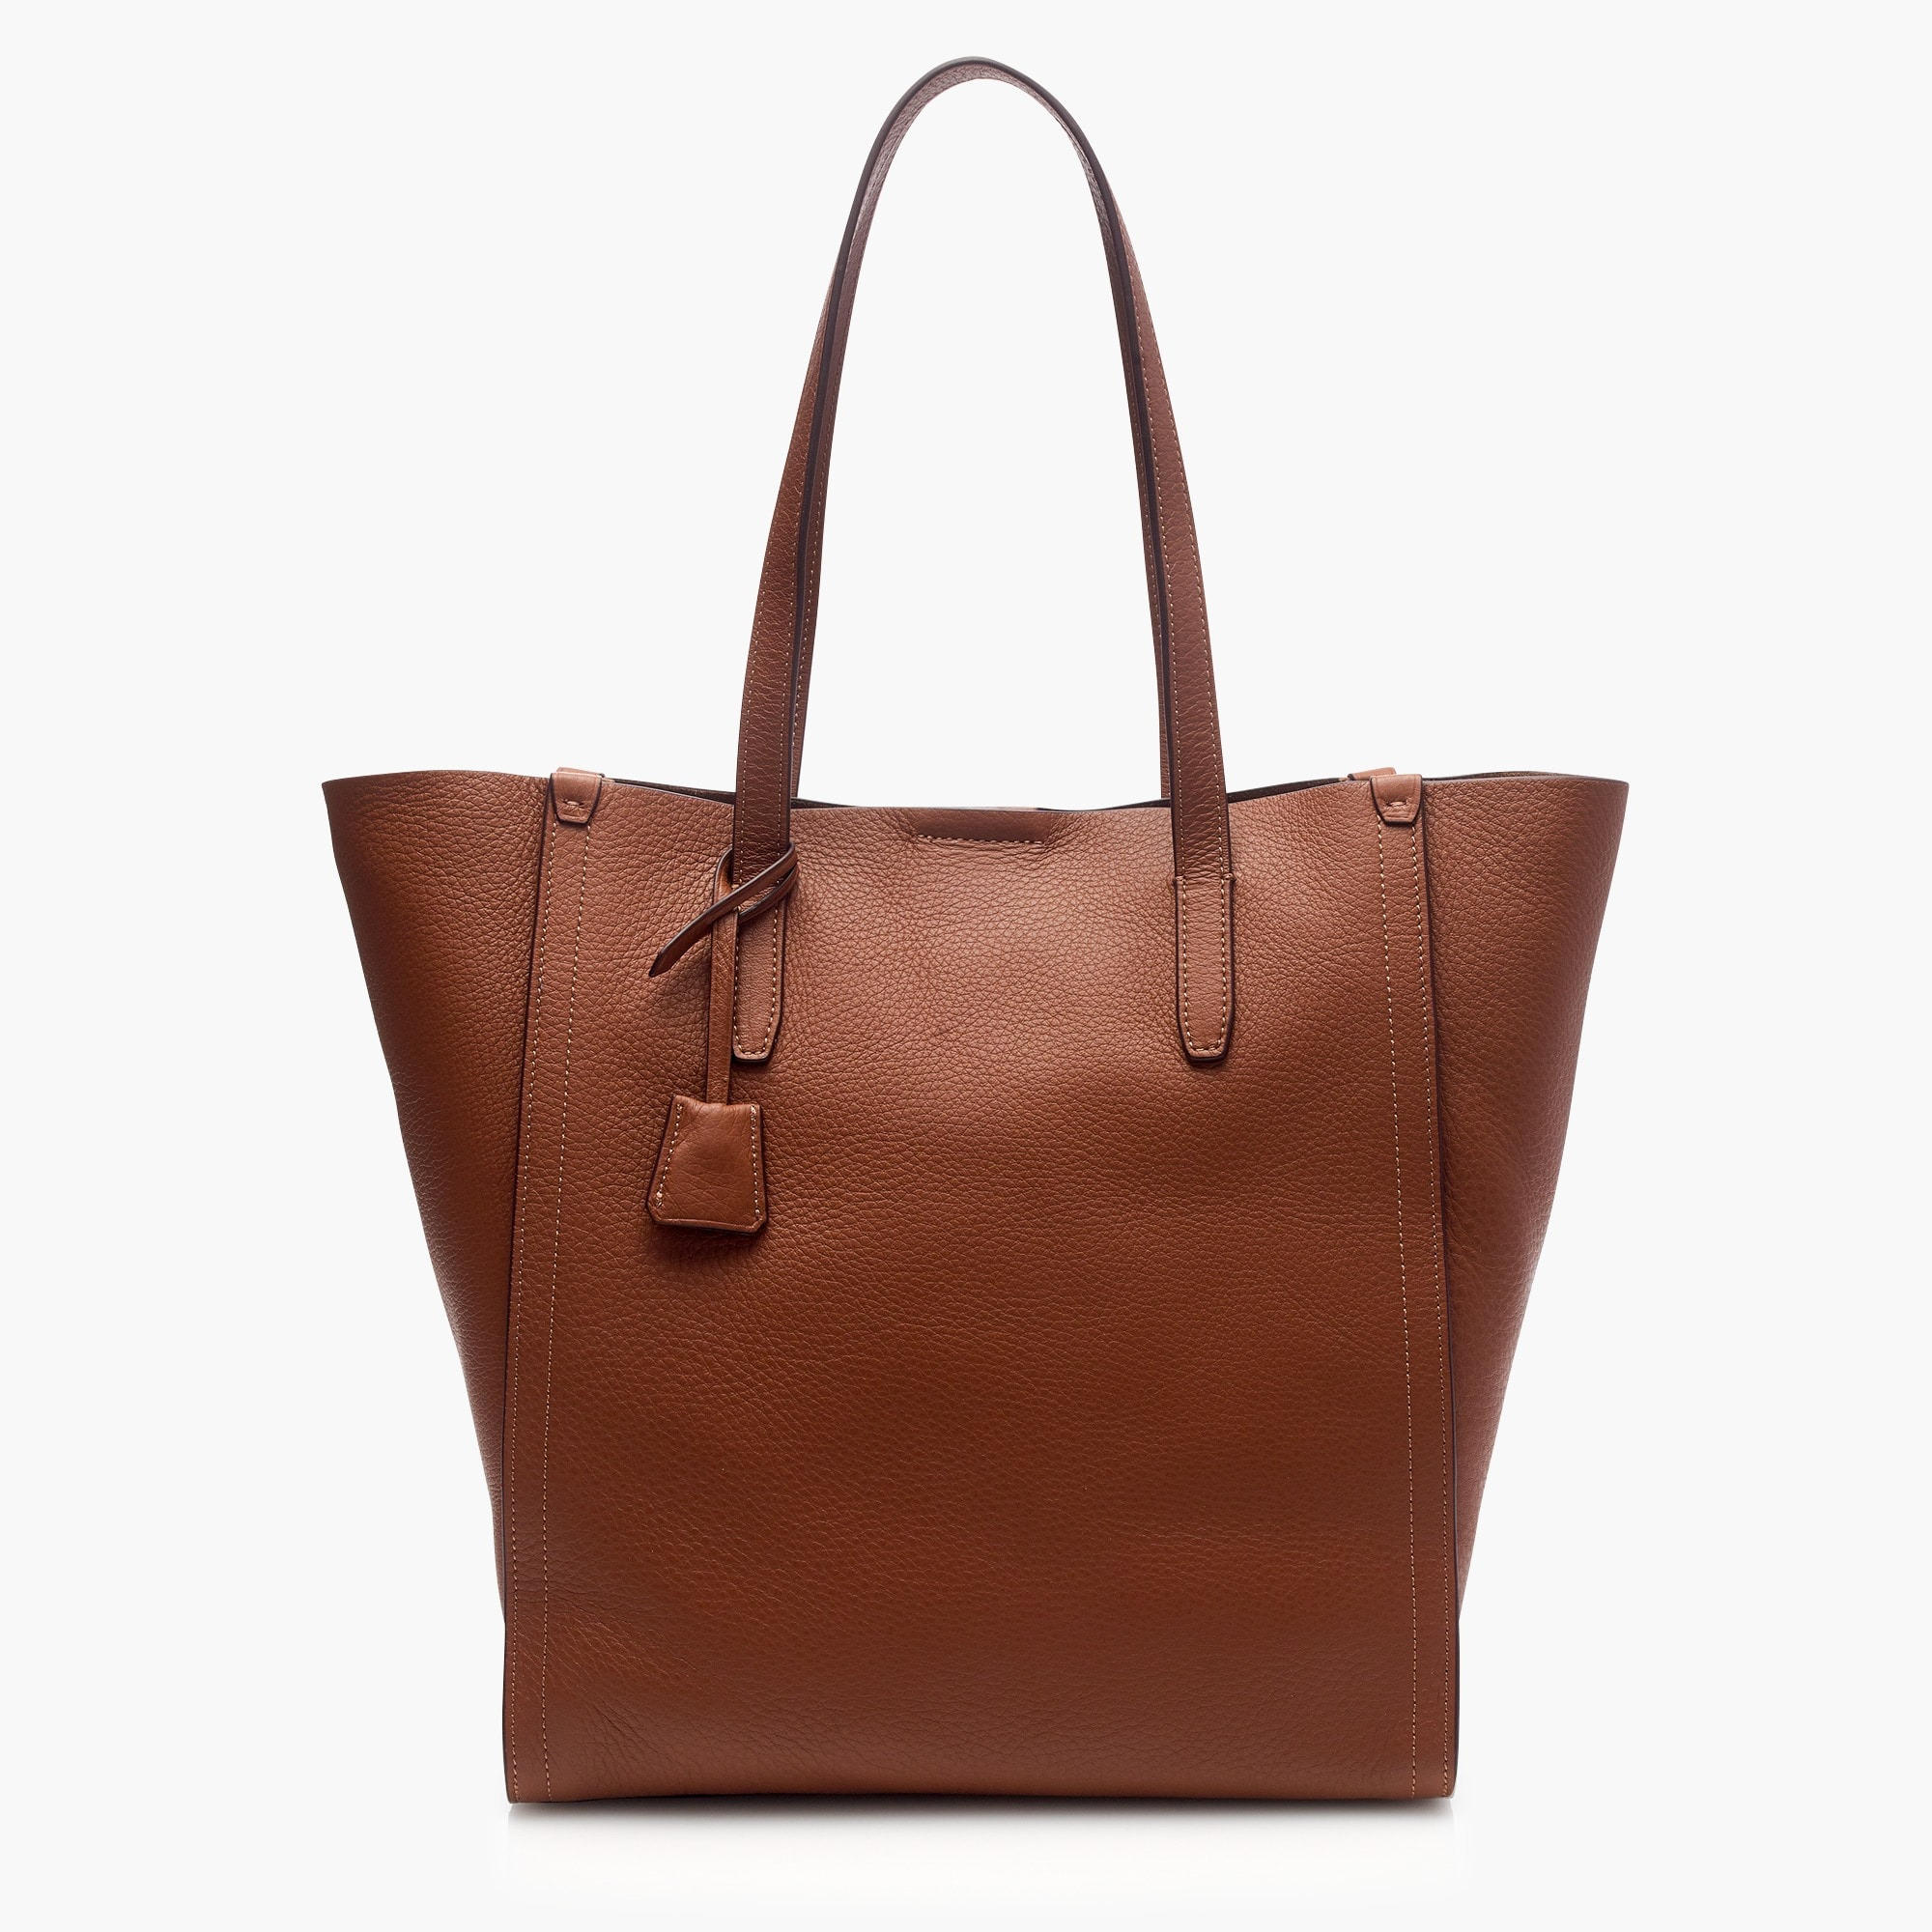 Signet tote bag in Italian leather   search